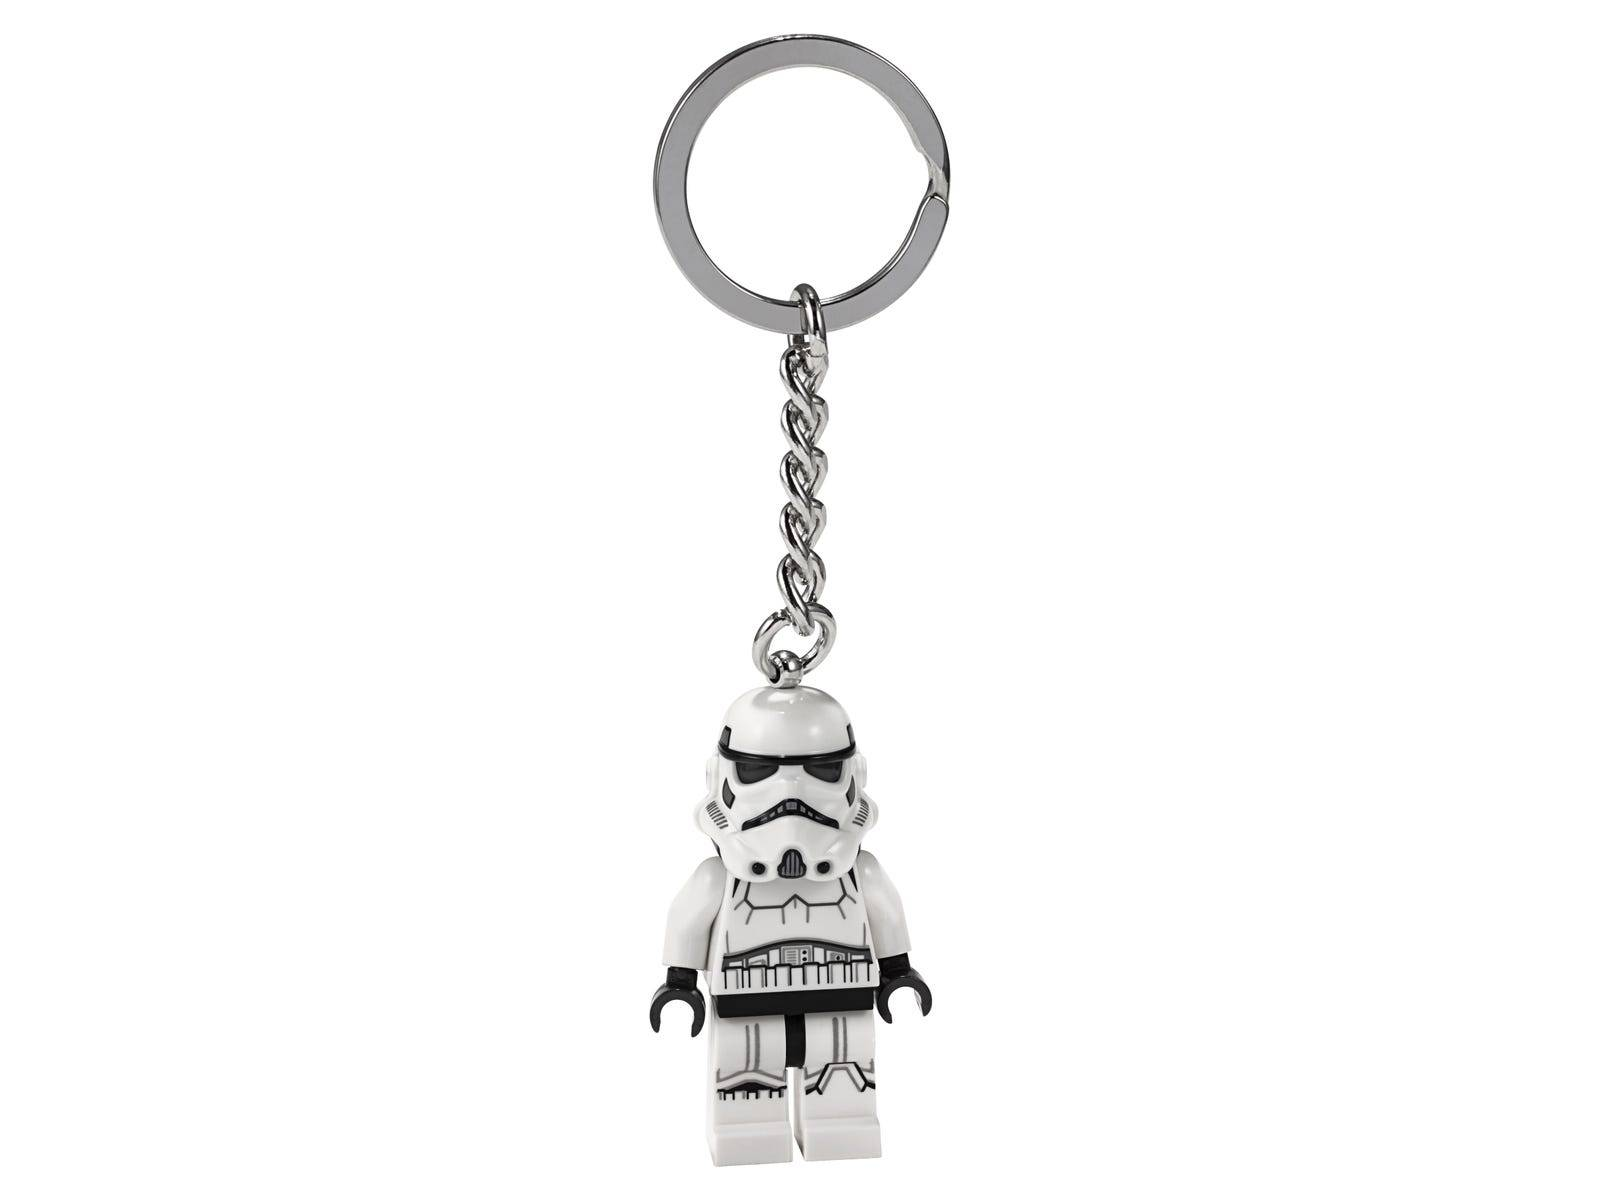 LEGO stormtrooper key chain